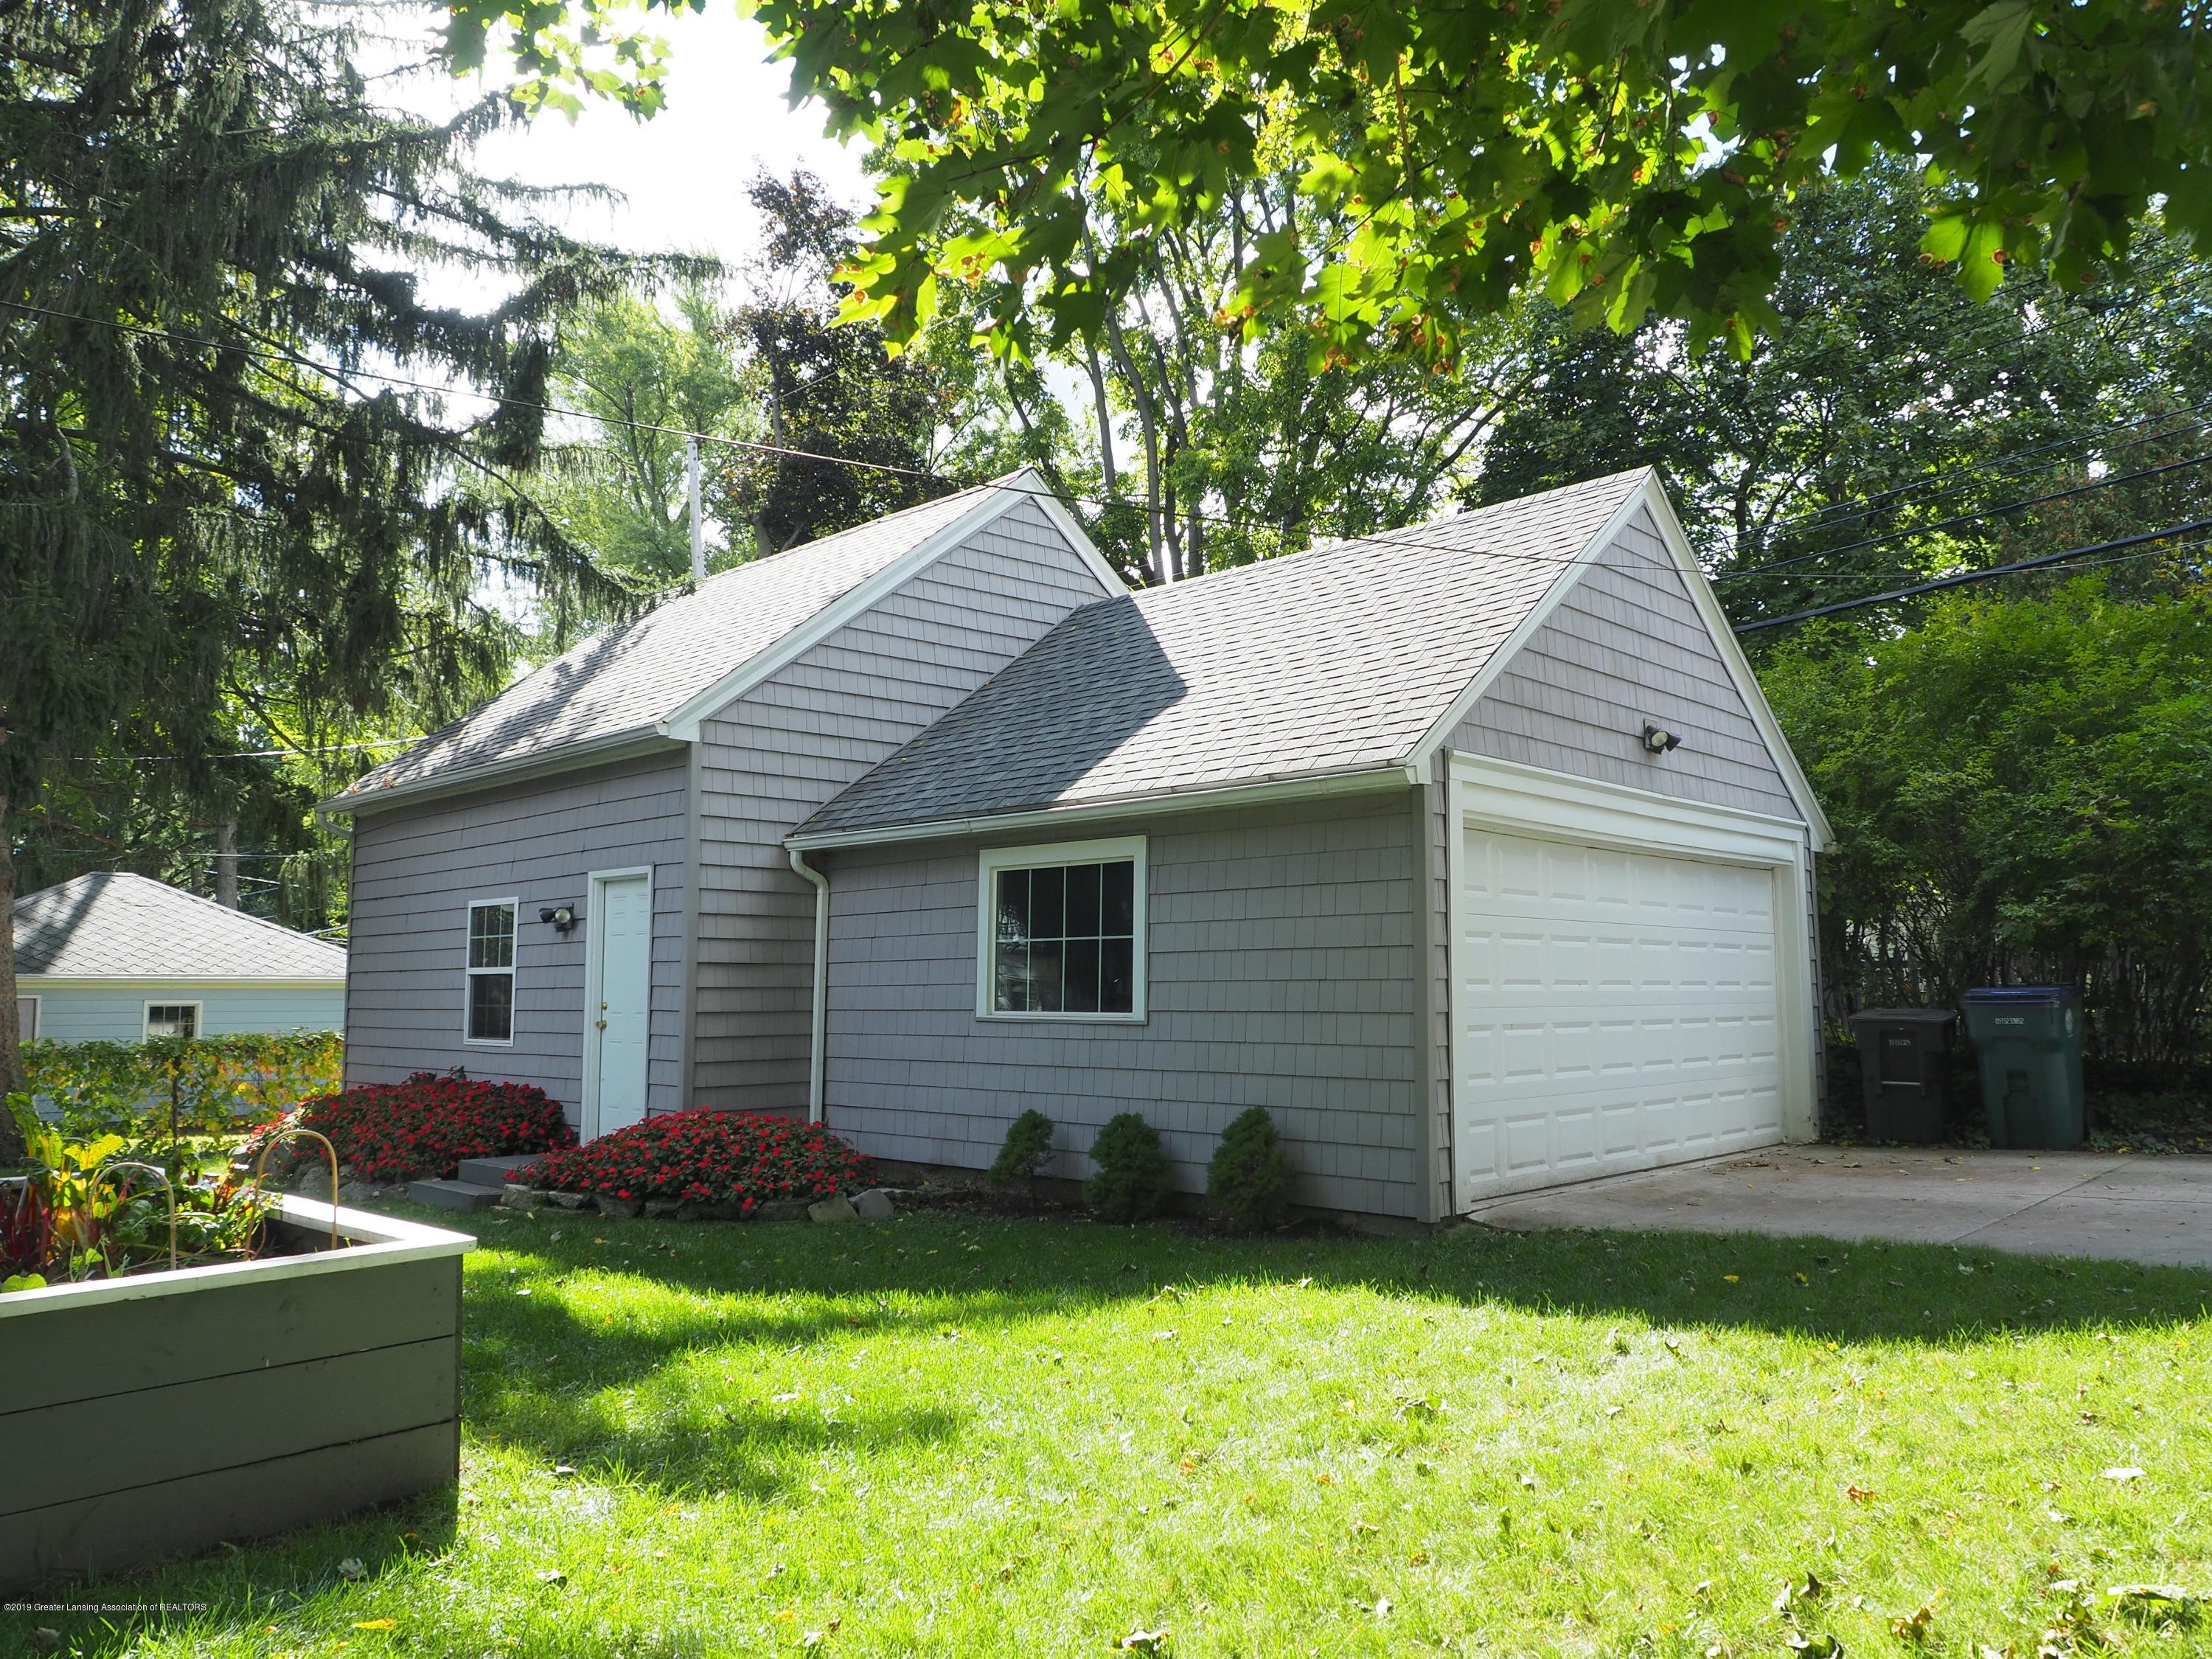 343 Cowley Ave - P1011462 - 29